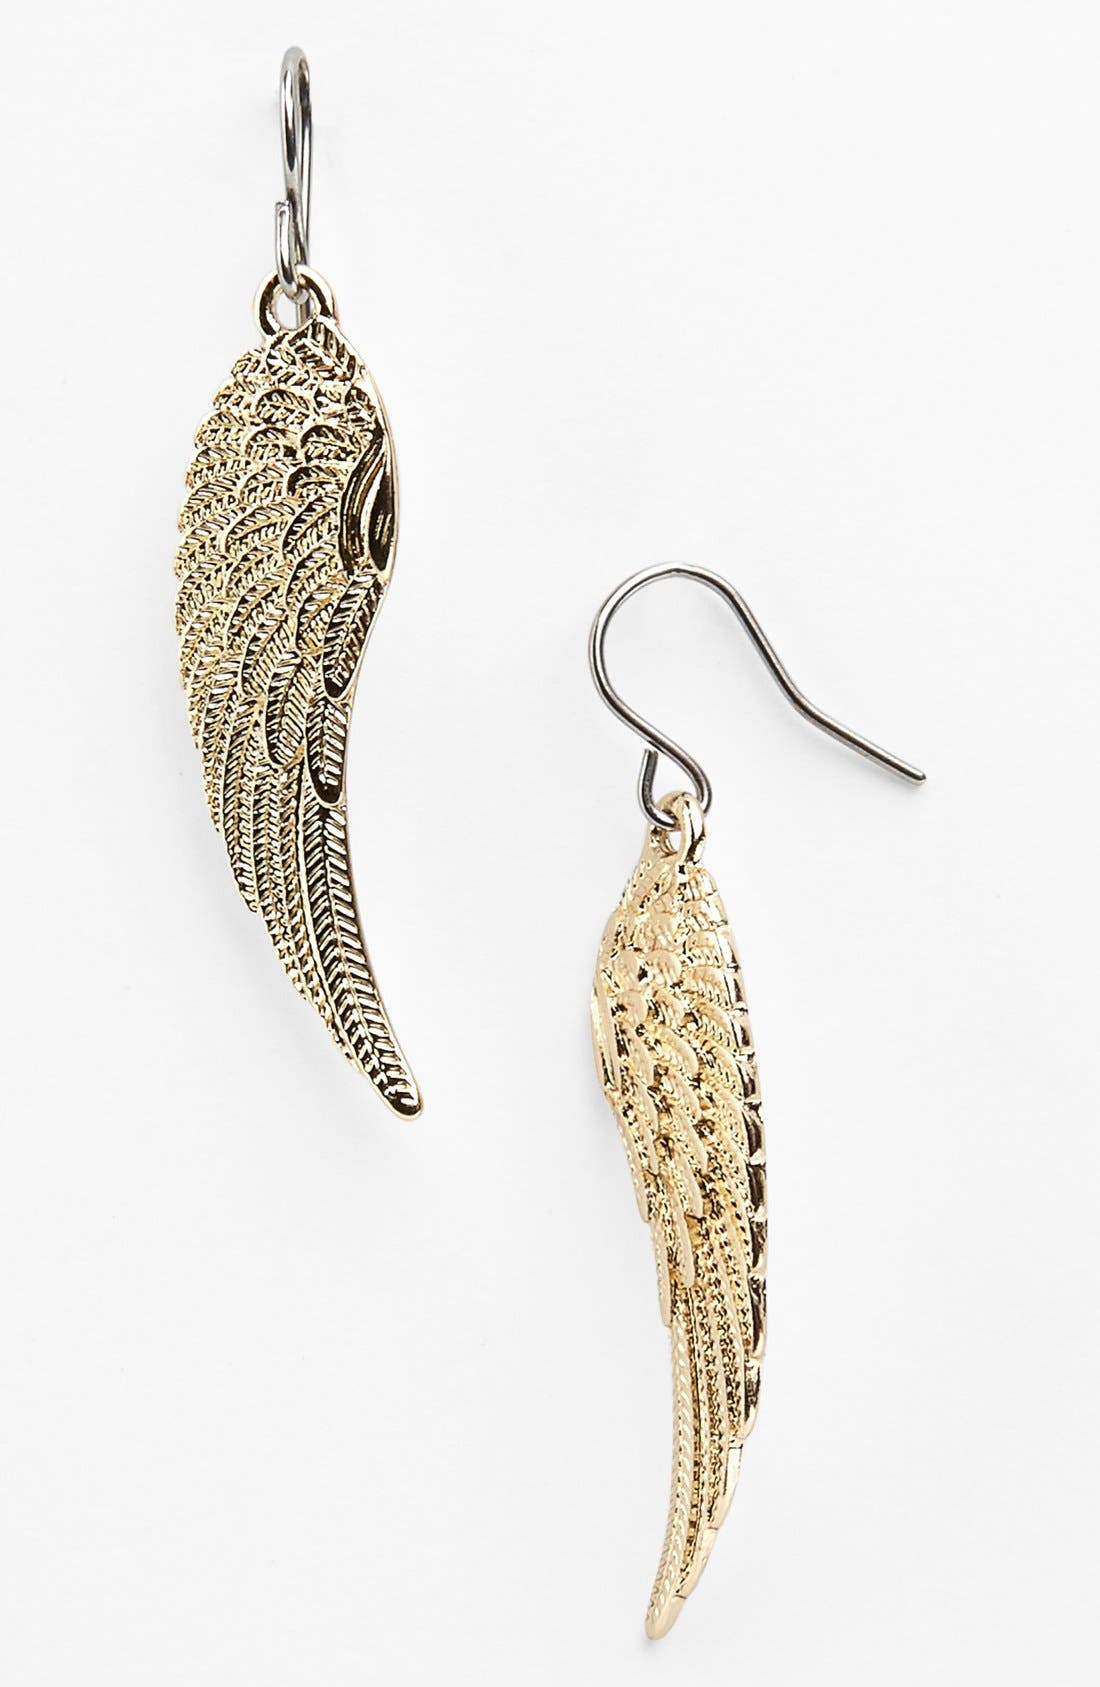 Alternate Image 1 Selected - Metal Haven by KENDALL + KYLIE 'Wing' Earrings (Juniors) (Nordstrom Exclusive)